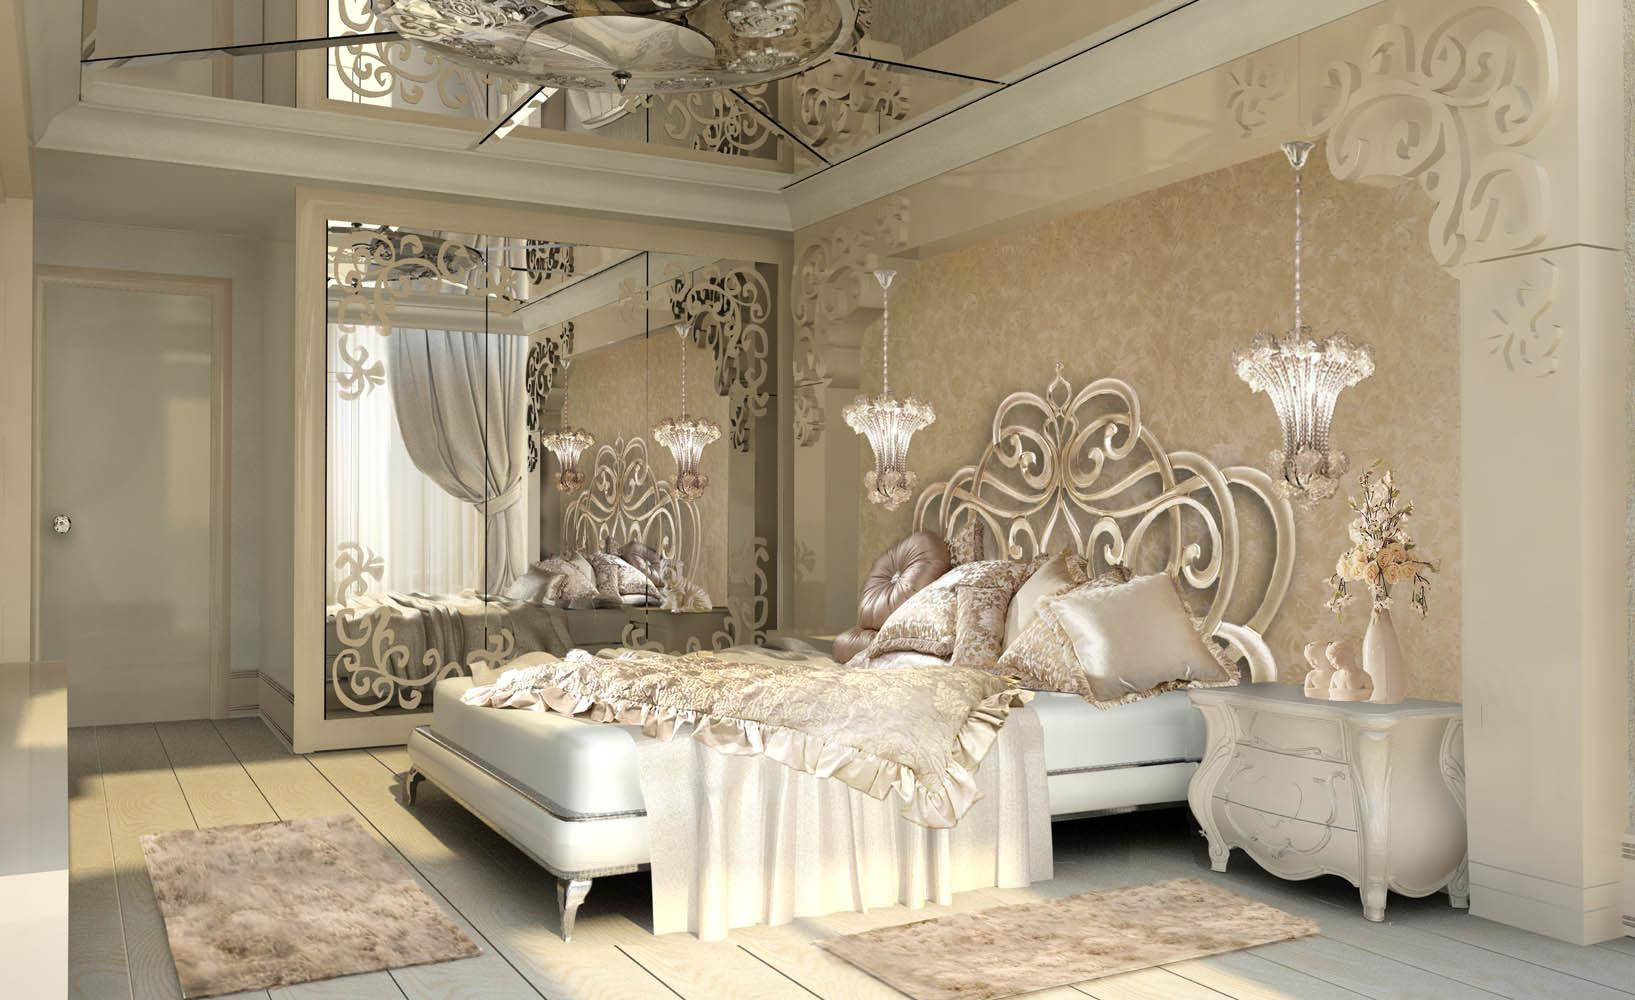 Large Round Mirrors Walls Artistry Luxury Gold